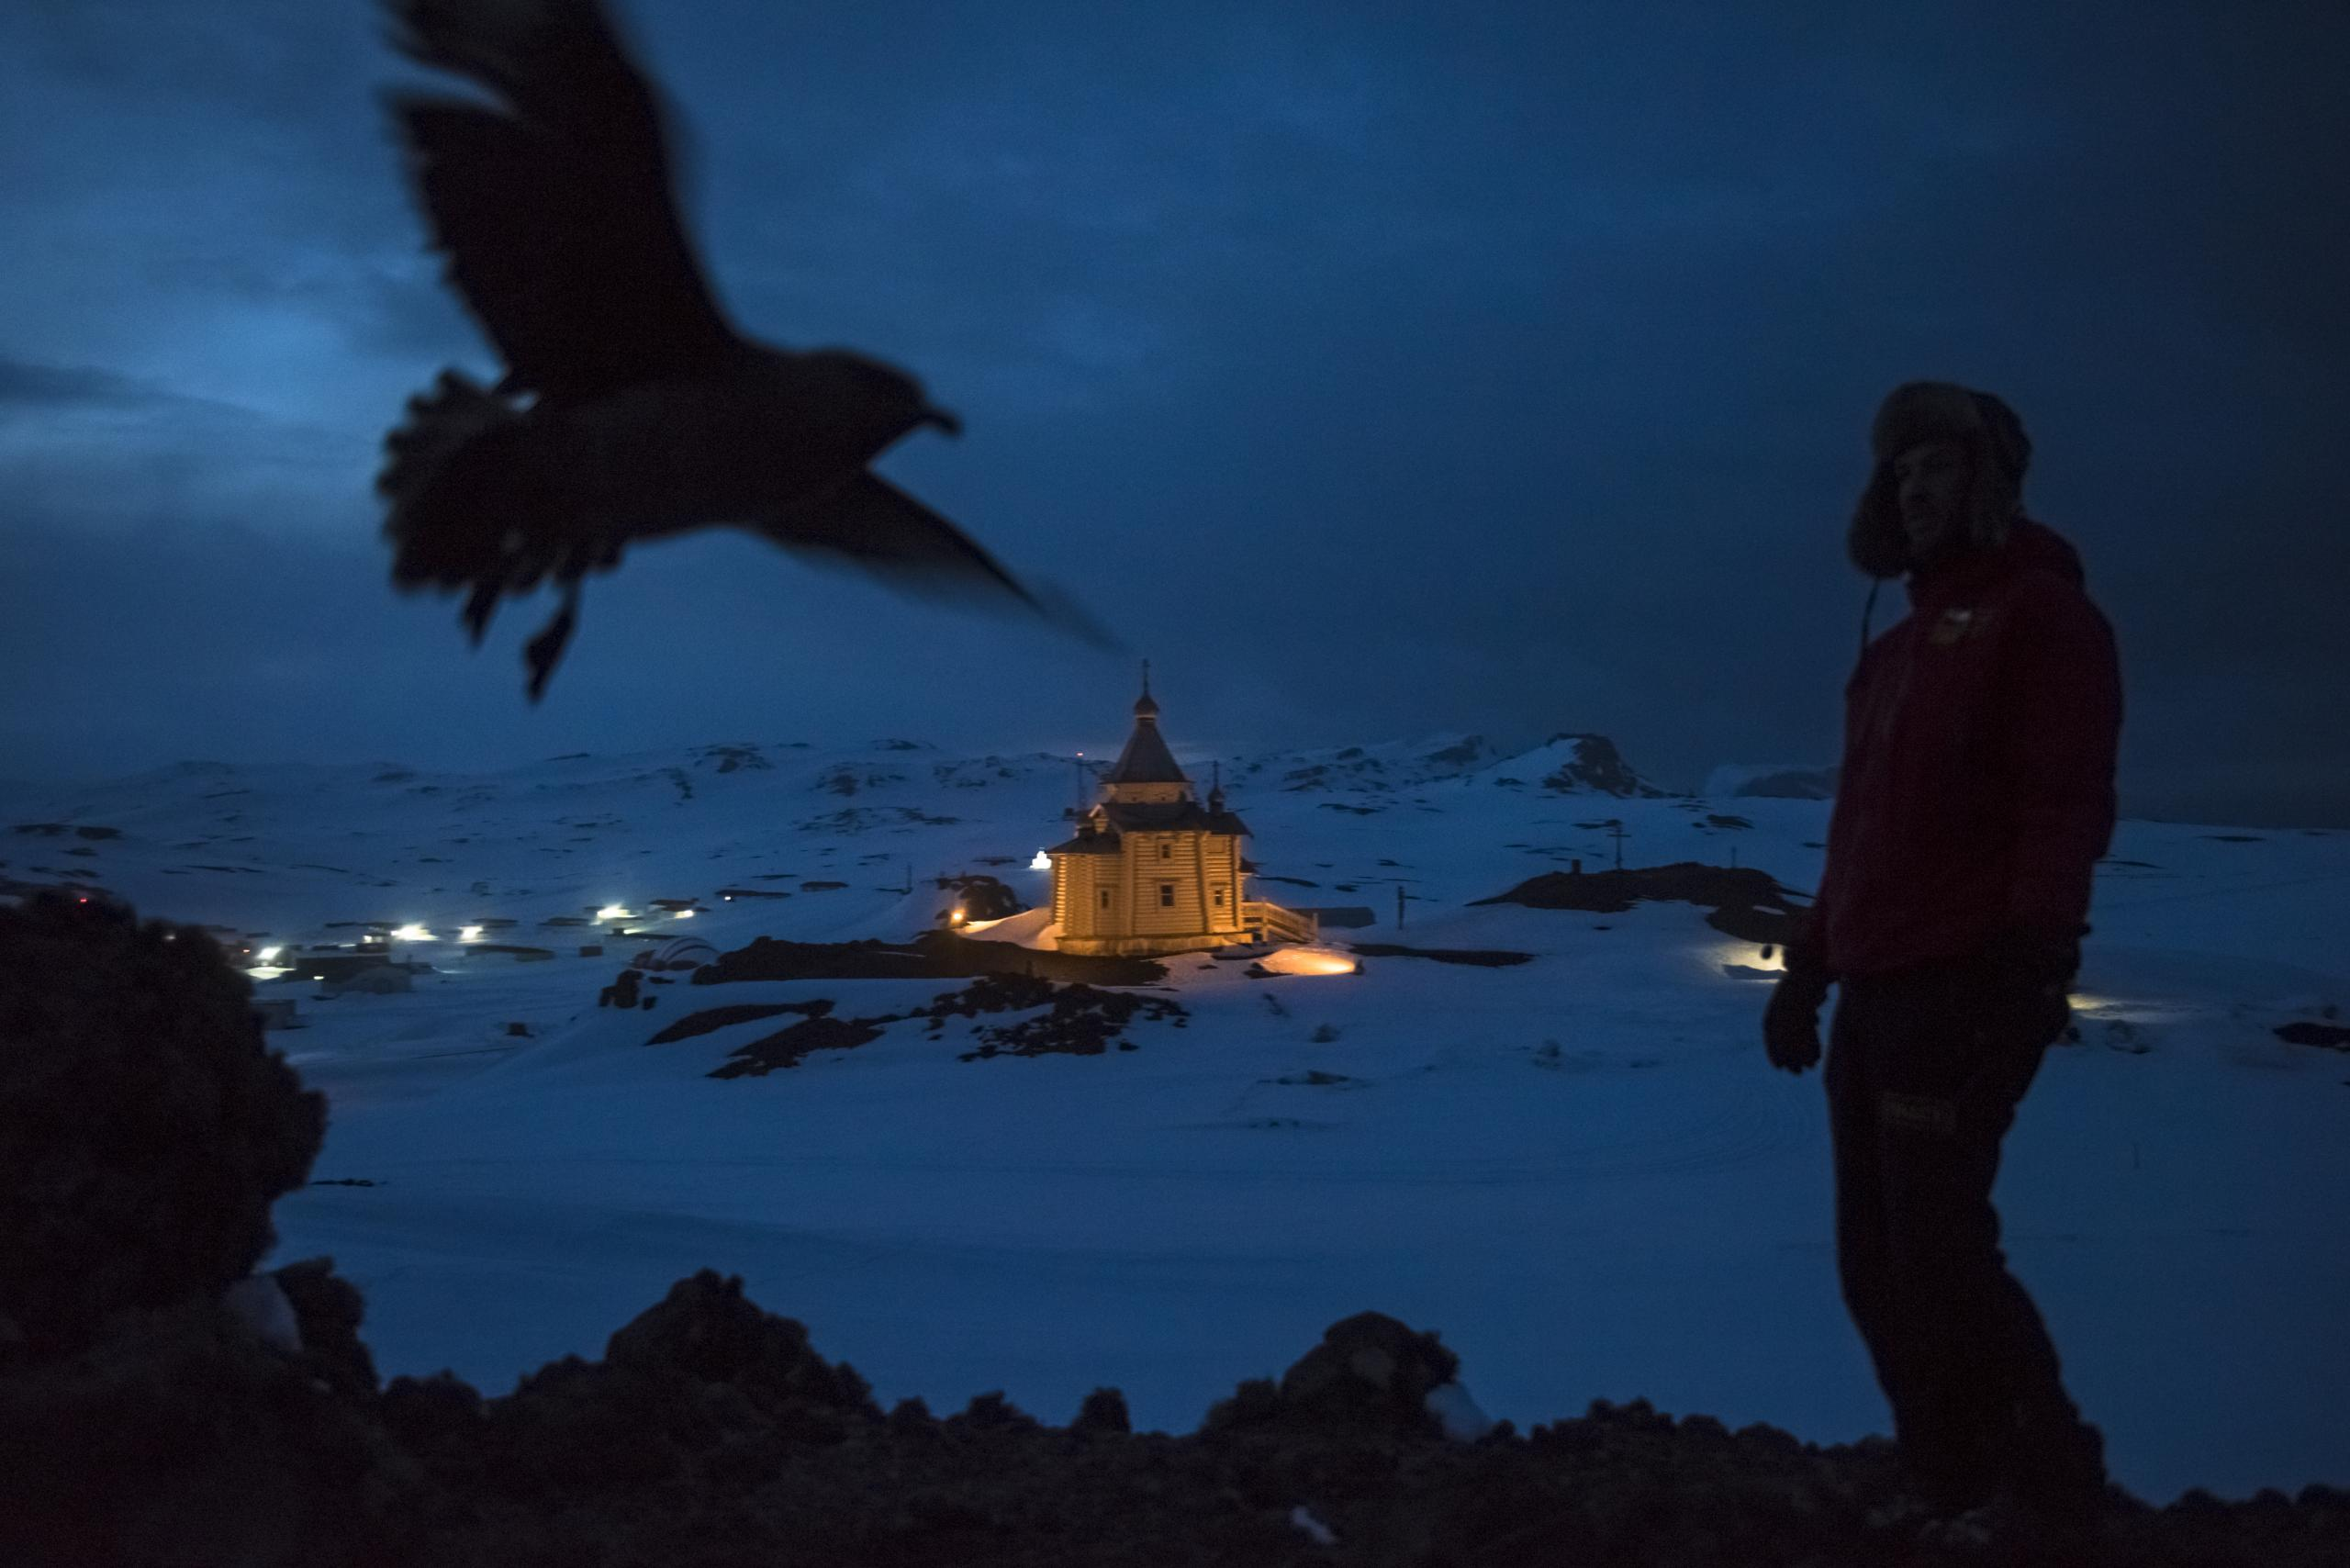 Dr. Ernesto Molina, who is supported by the Chilean Antarctic Institute, walks by the Bellingshausen Russian Antarctic base, with its Orthodox Church of the Holy Trinity, in Fildes Bay. A number of countries, including Chile, Poland and Russia, have set up scientific stations on King George Island in the Antarctic. By the Antarctic Treaty, which came into force in 1961, Antarctica was set aside as a scientific preserve, with freedom of investigation and free intellectual exchange. No country may exploit mineral resources or exert territorial claims. The treaty is currently in force until 2048, but a number of countries have an eye on asserting greater influence before the renewal date. Some are looking to the strategic and commercial possibilities that exist right now, such as iceberg harvesting (Antarctica is estimated to have the biggest reserves of fresh water on the planet), krill fishing, and expanding global navigation abilities. © Daniel Berehulak